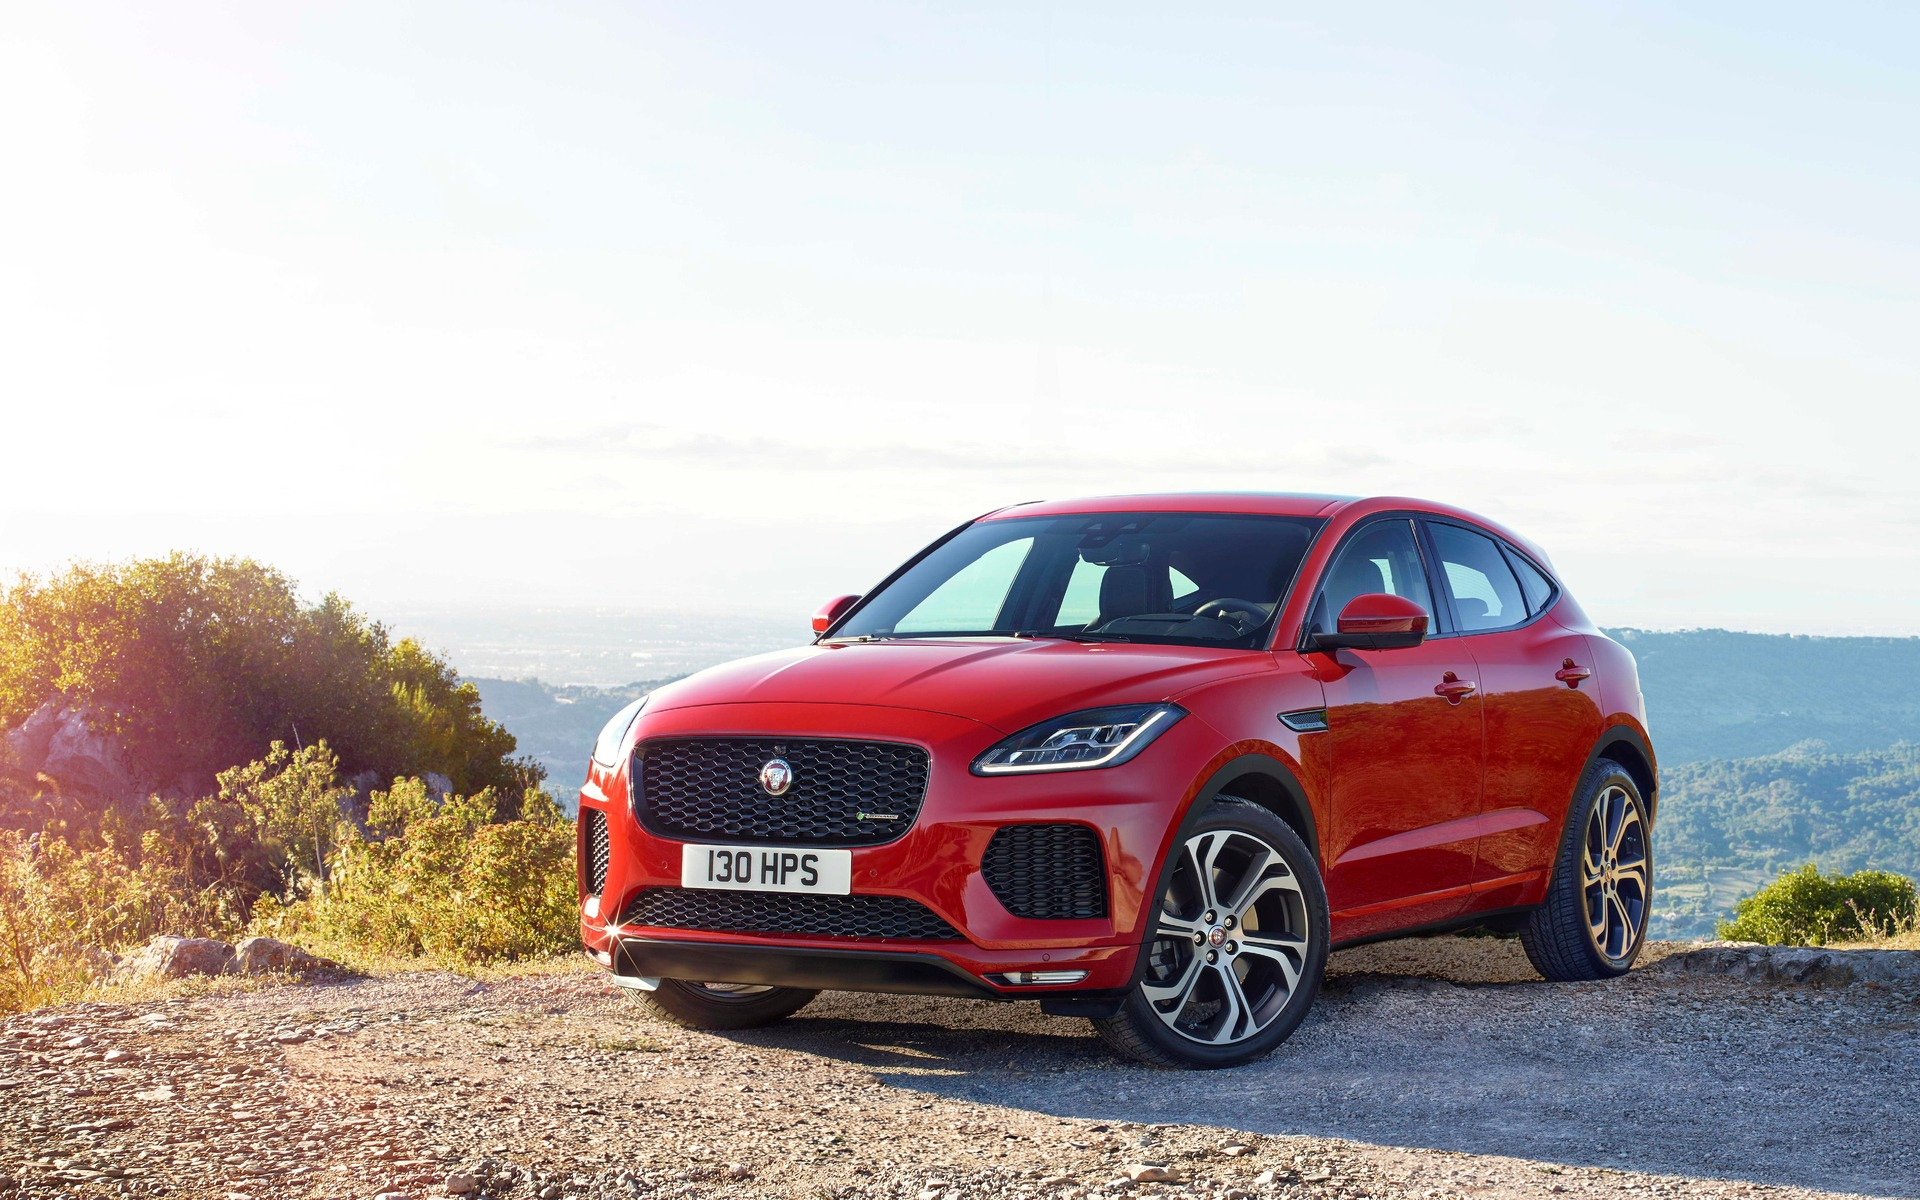 le jaguar e pace 2018 officiellement d voil guide auto. Black Bedroom Furniture Sets. Home Design Ideas